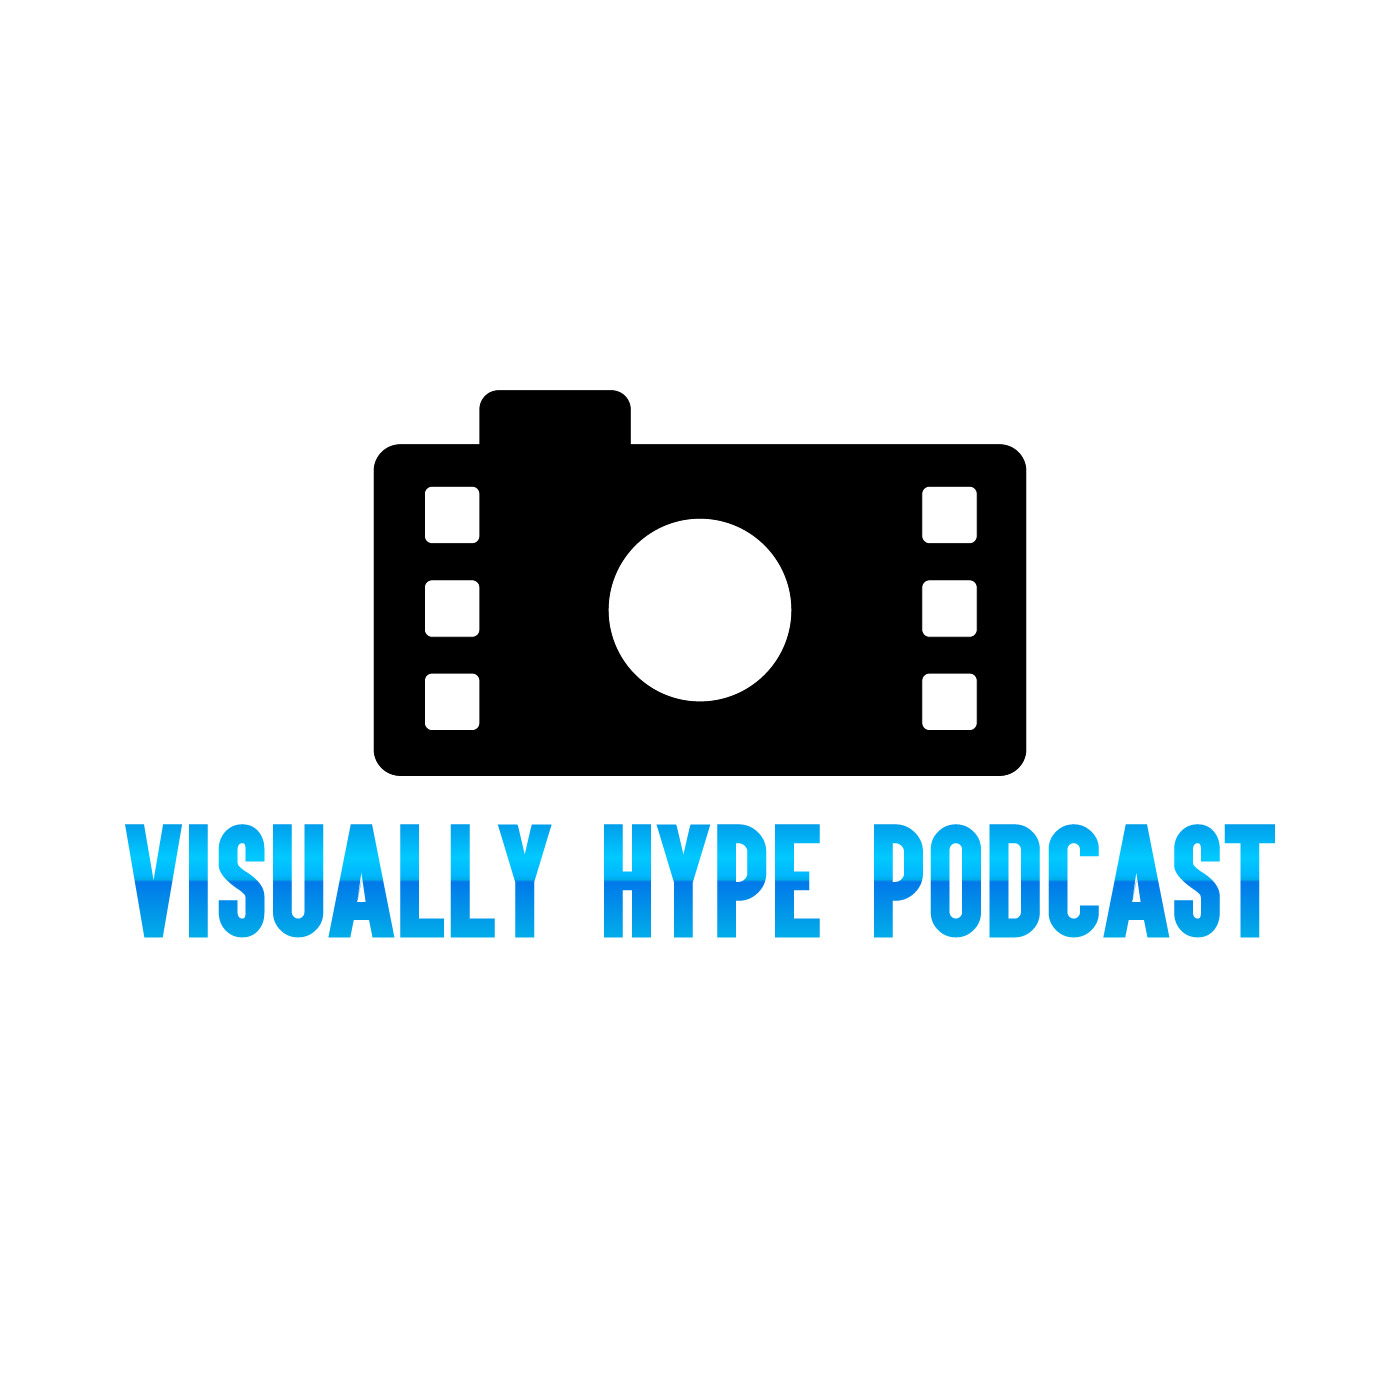 Visually Hype Podcast